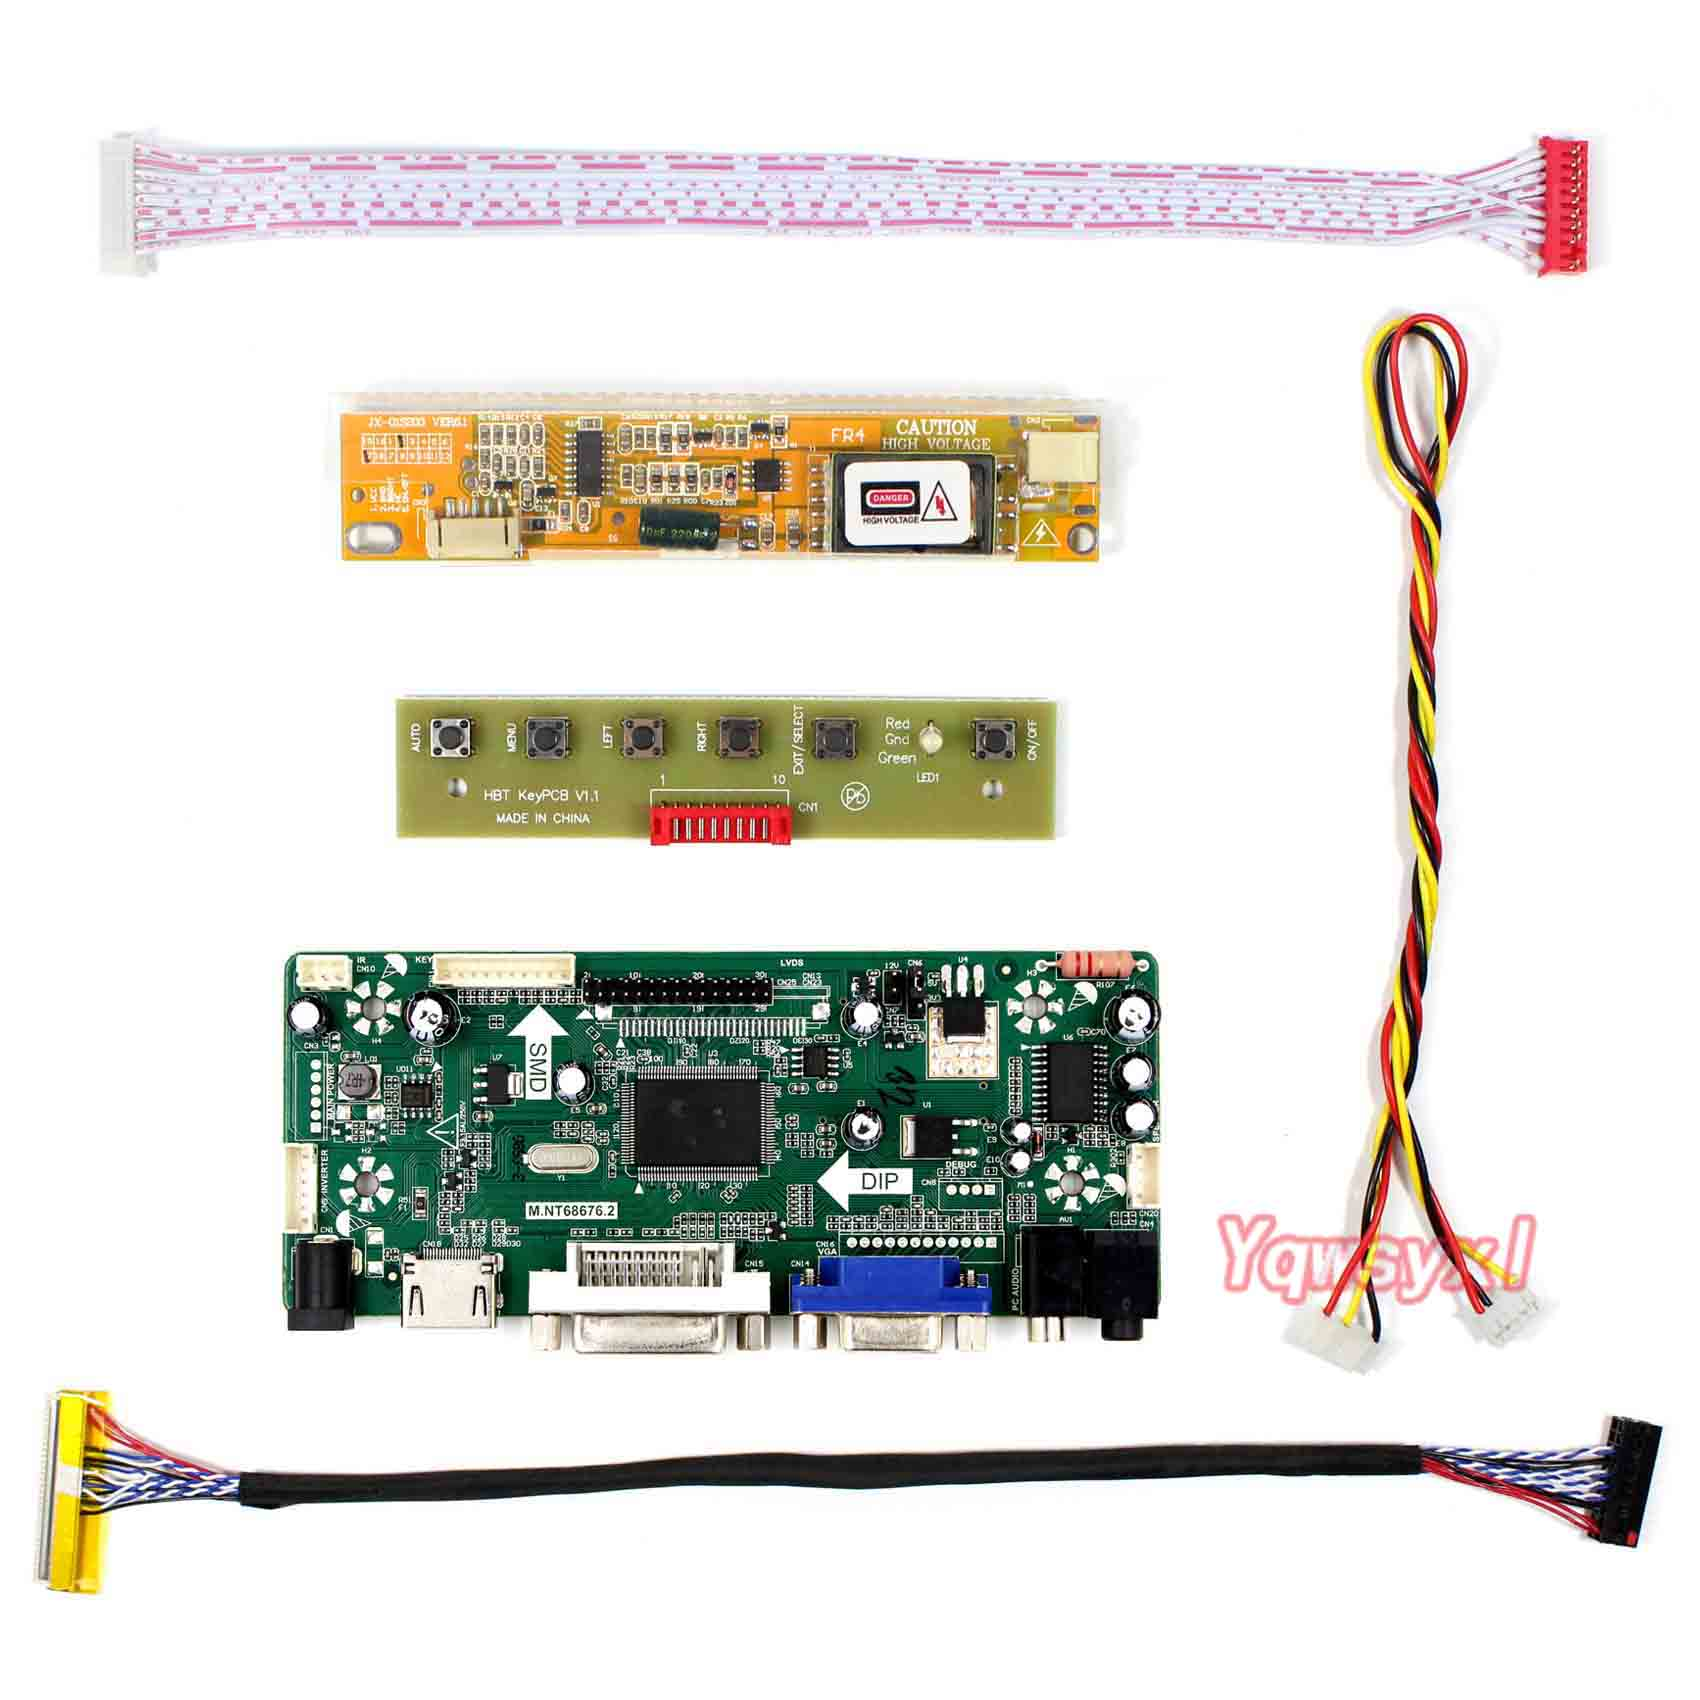 Yqwsyxl Control Board Monitor Kit For N141X201 N141X203 HDMI+DVI+VGA LCD LED Screen Controller Board Driver